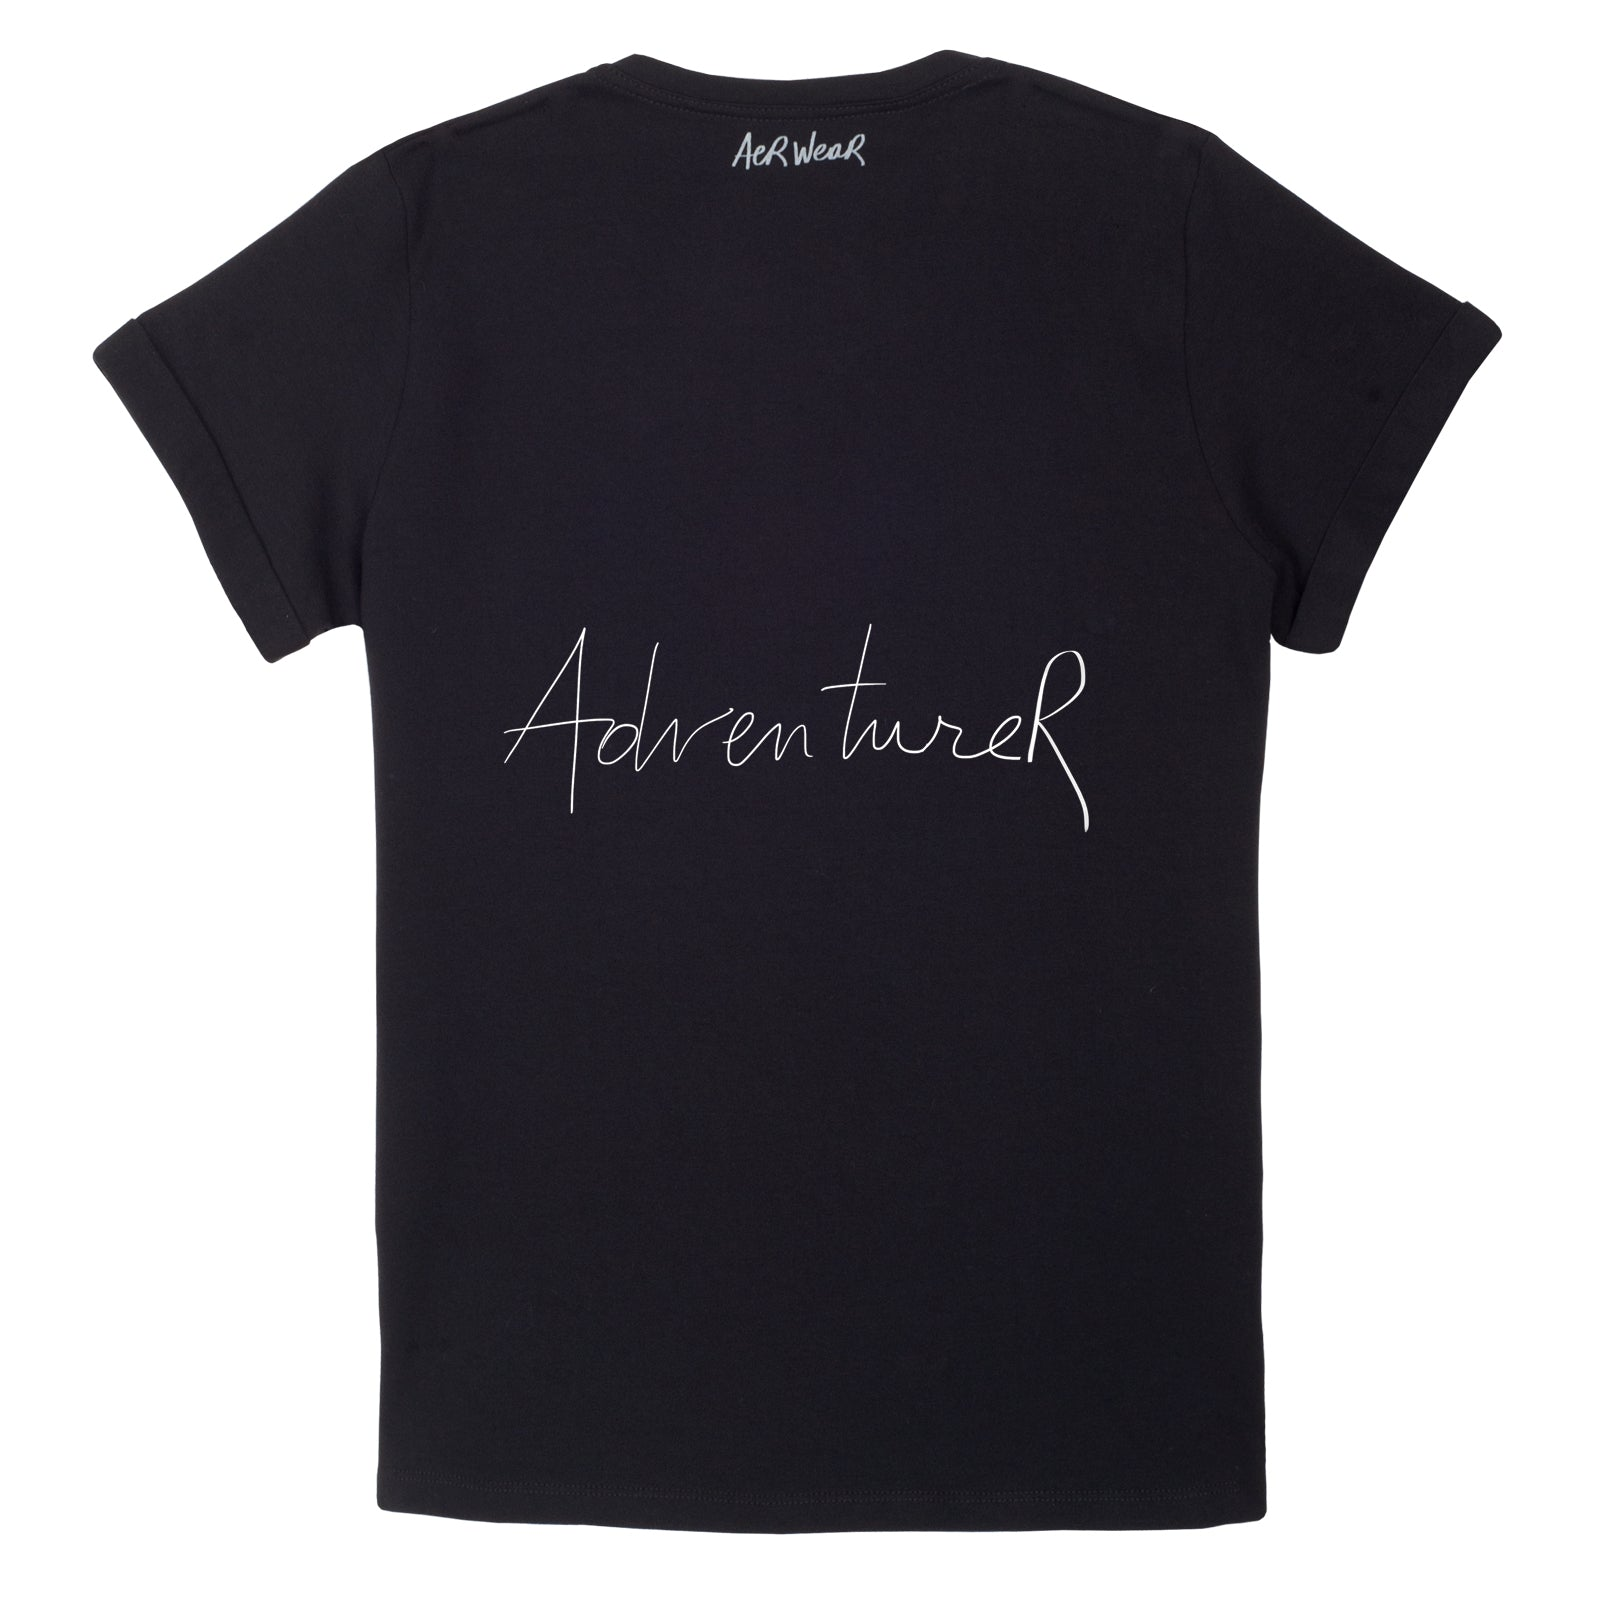 ADVENTURER Tshirt Black version